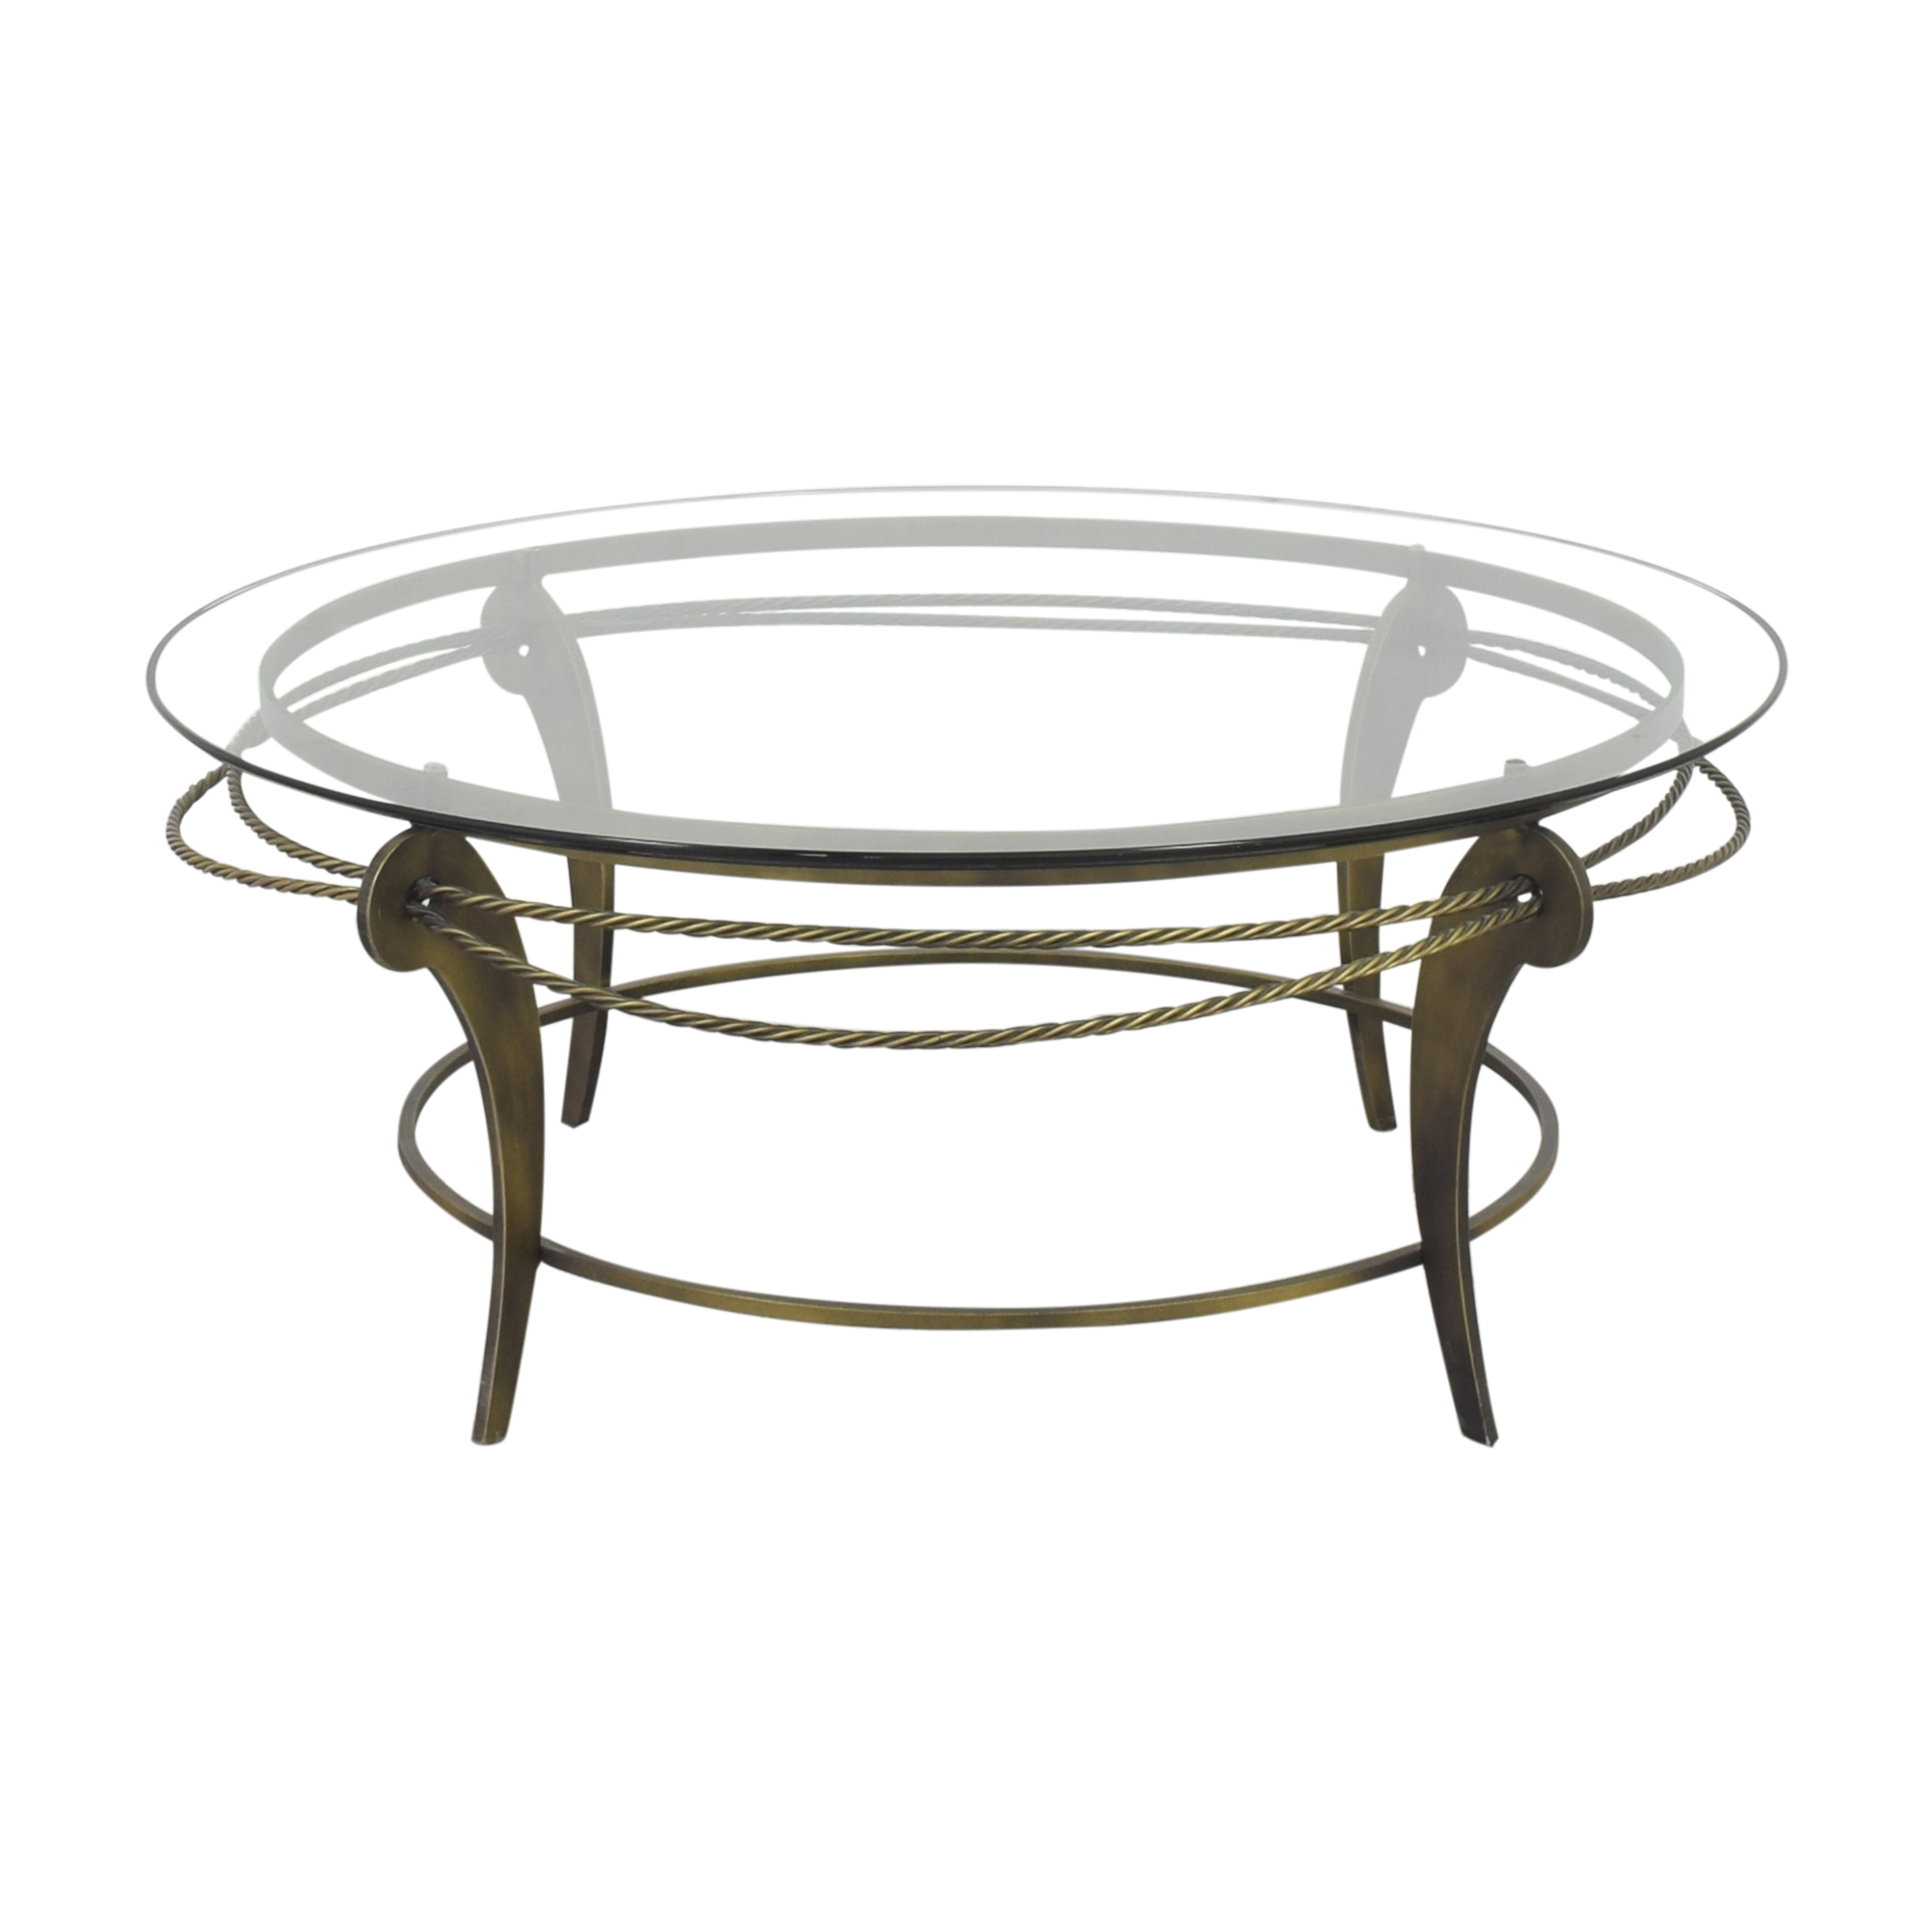 Ethan Allen Round Glass and Metal Coffee Table sale